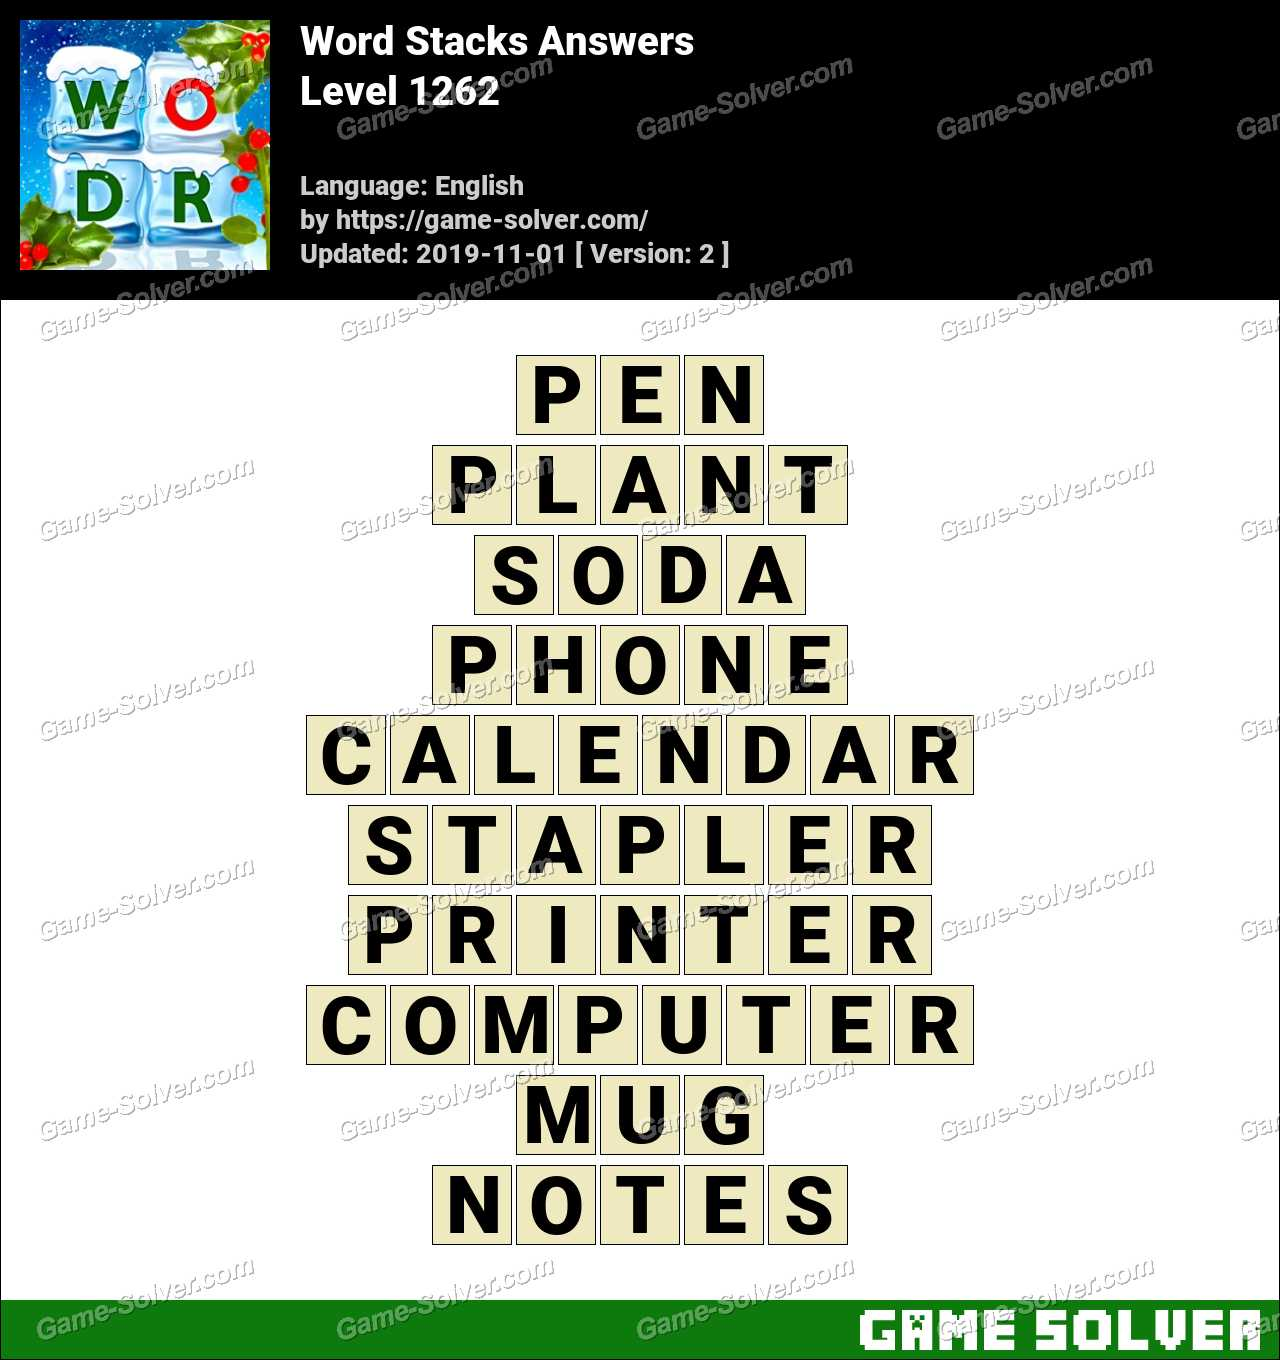 Word Stacks Level 1262 Answers